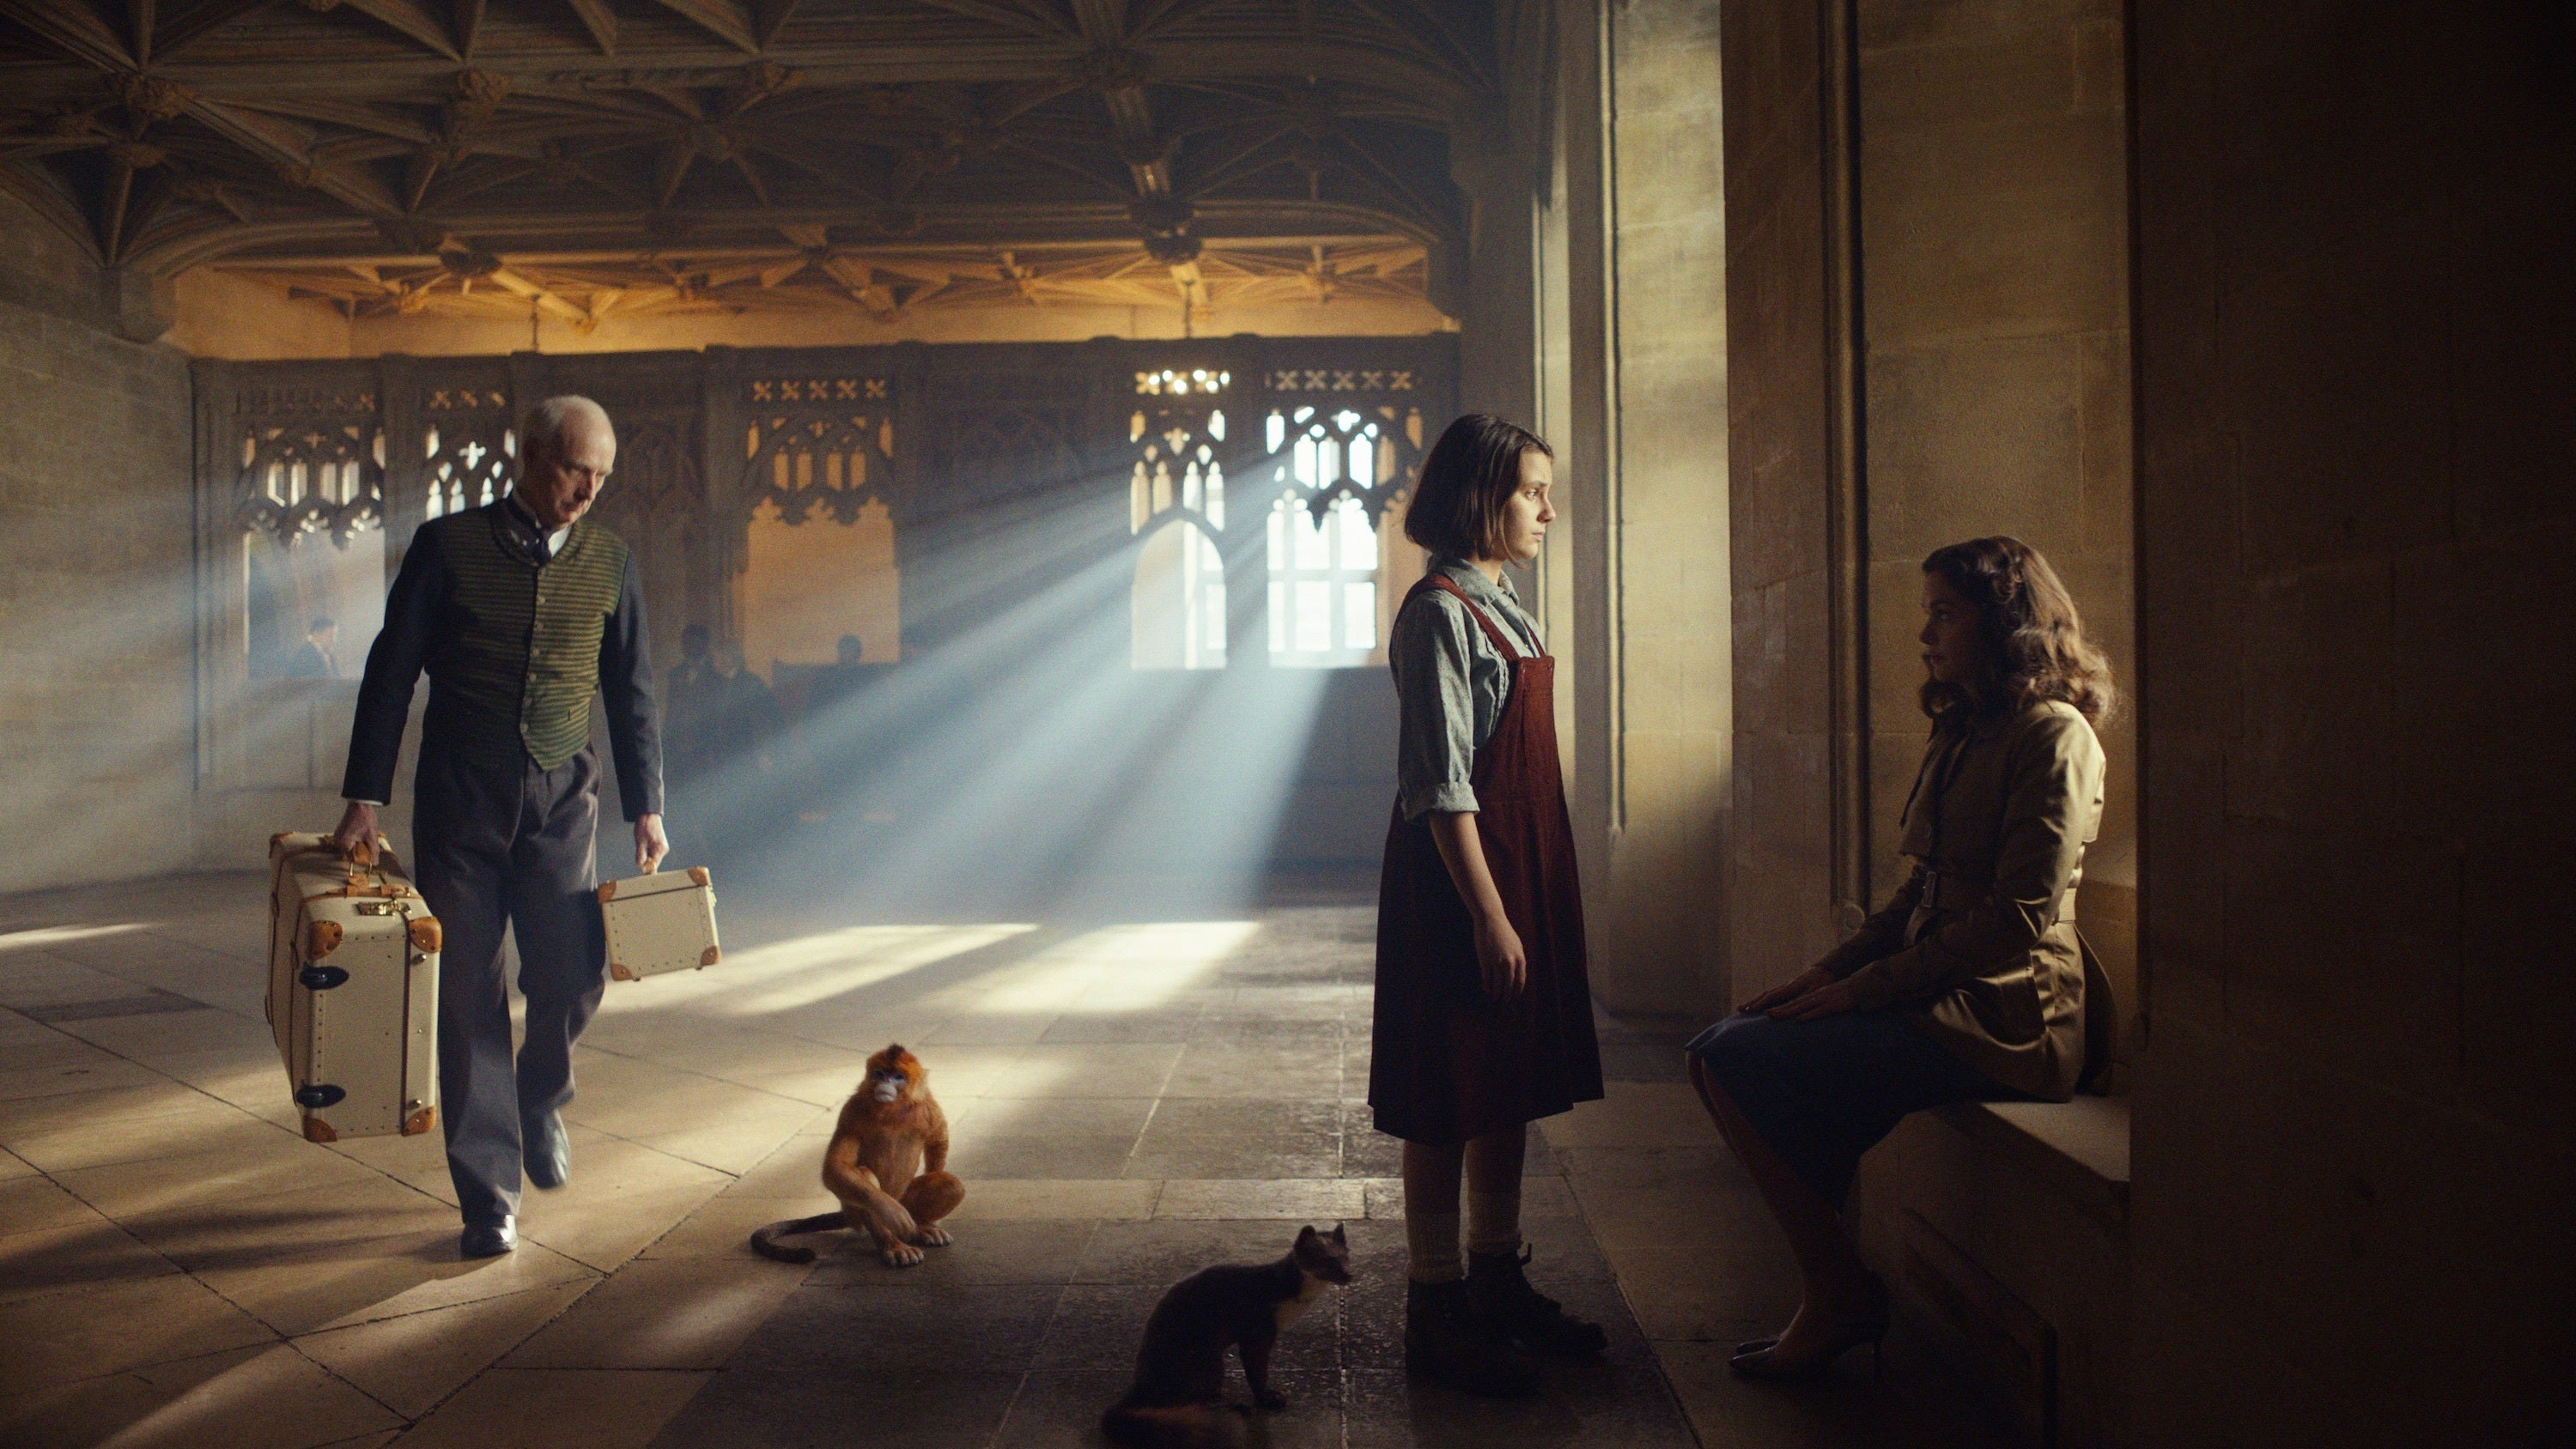 What We Like (And Don't Like) About HBO's New His Dark Materials Show